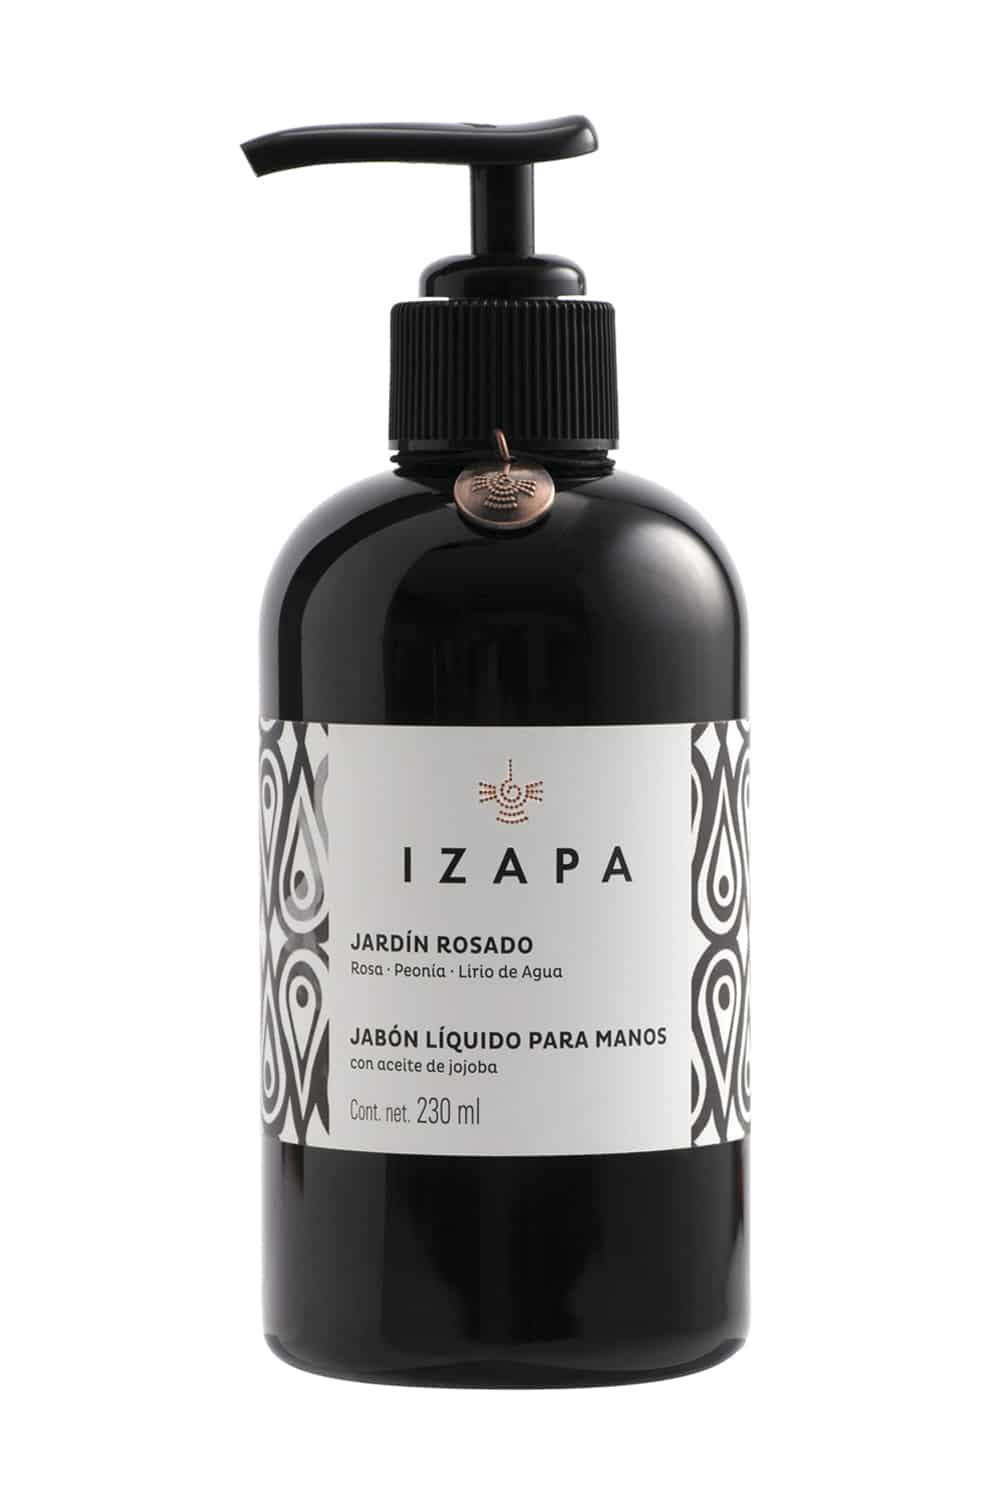 Izapa Liquid Hand Soap